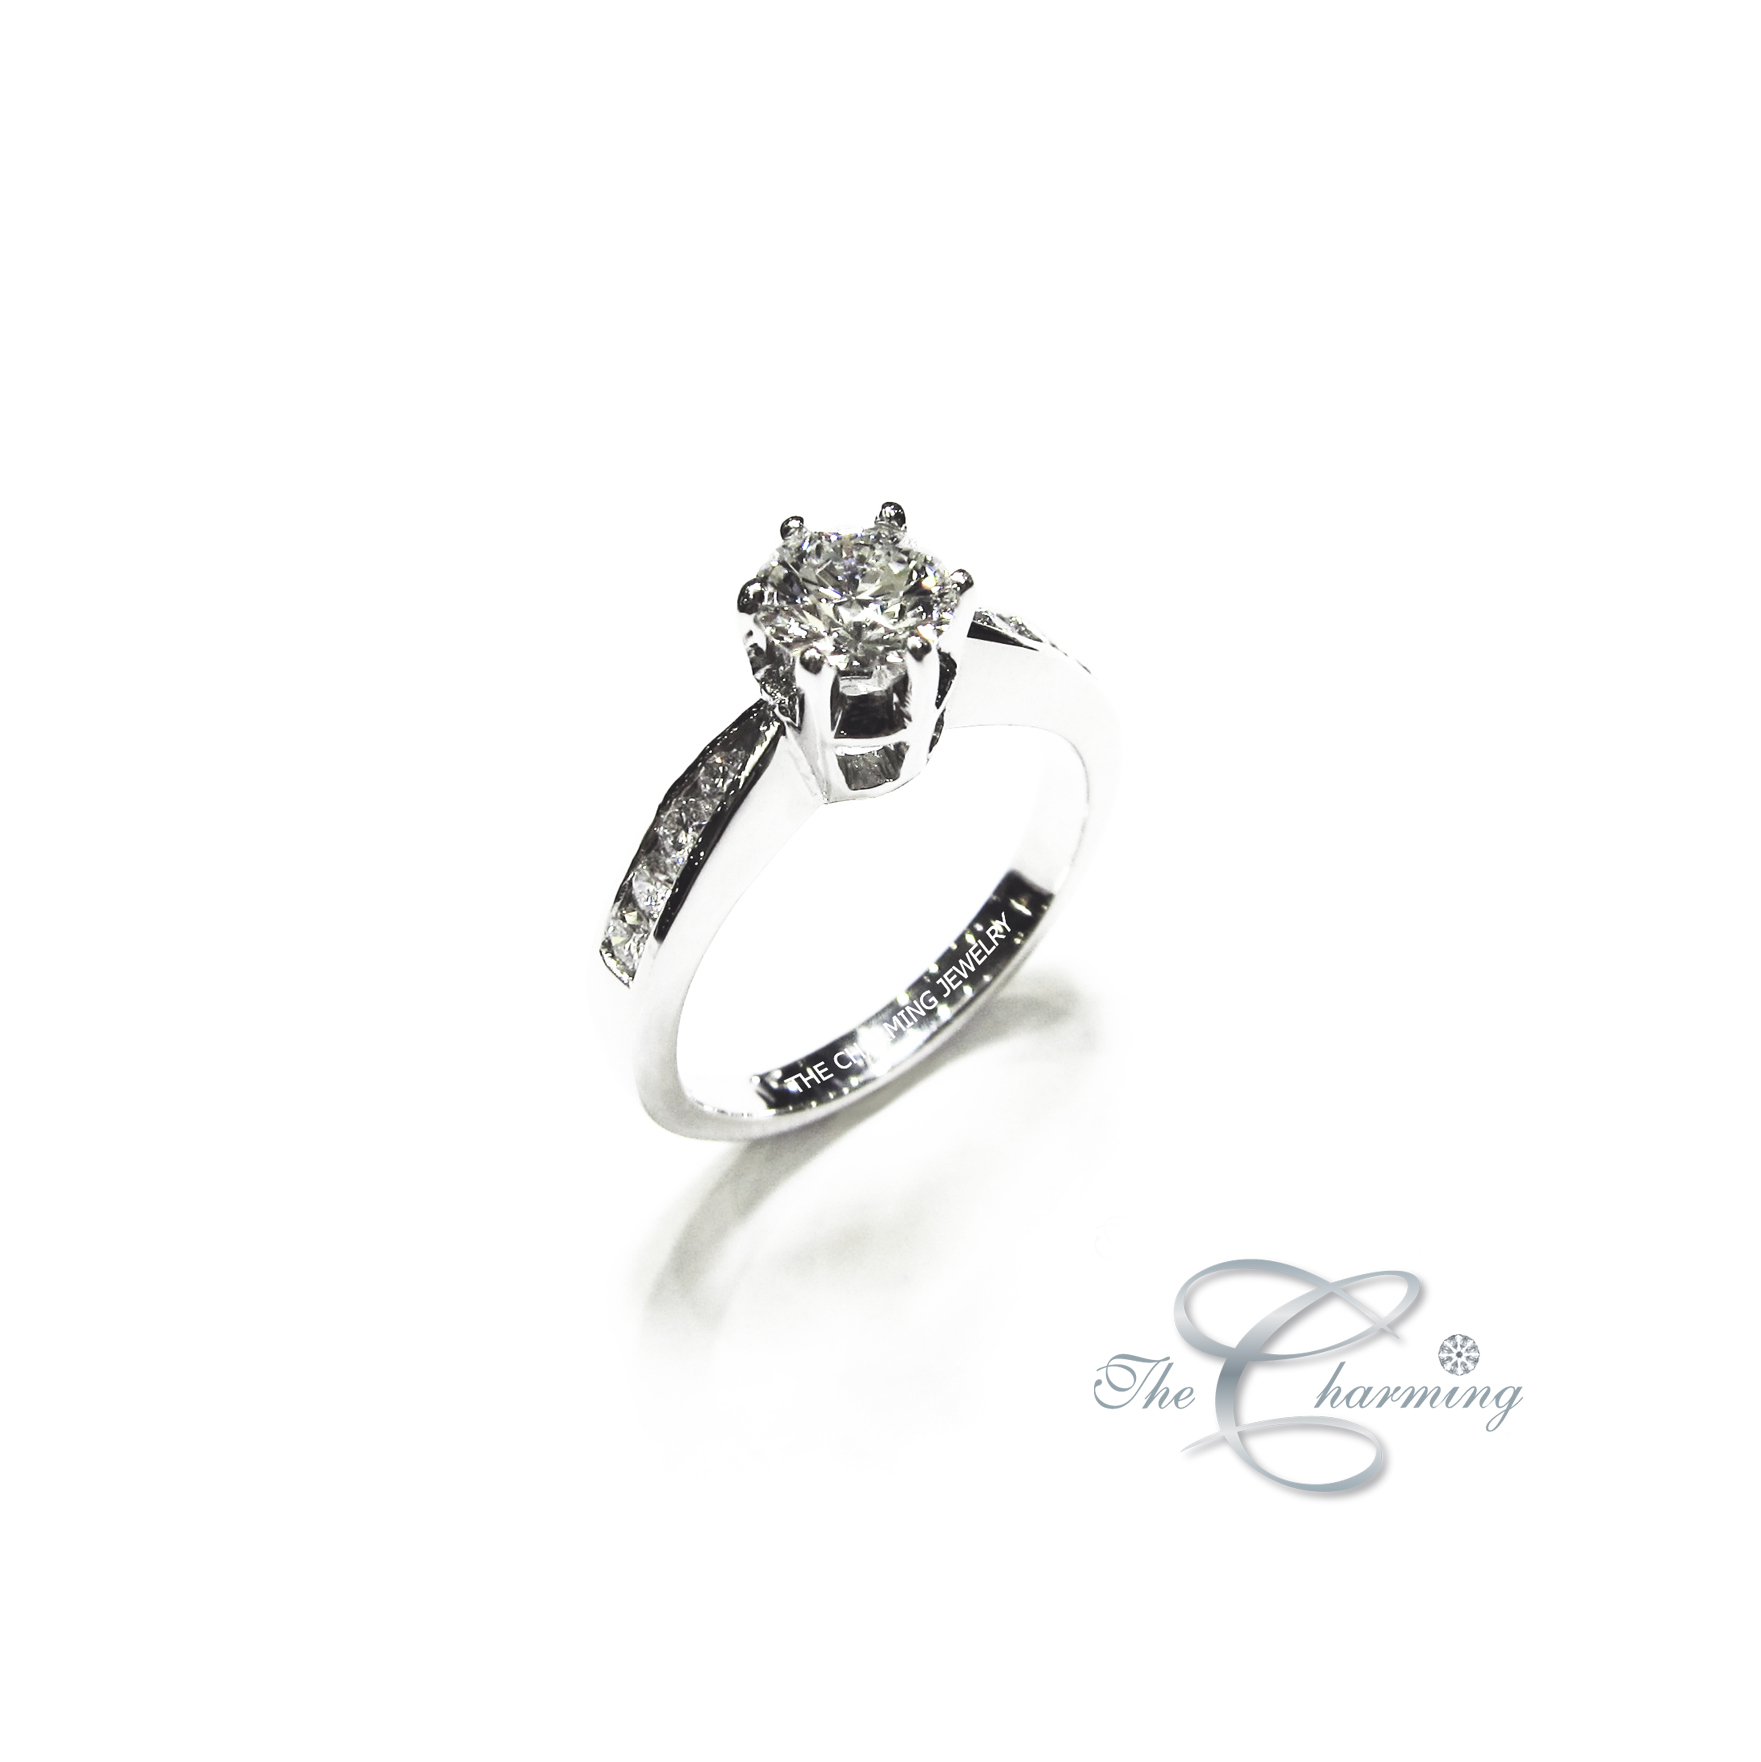 The Charming_solitaire_diamond ring_wedding ring_ring